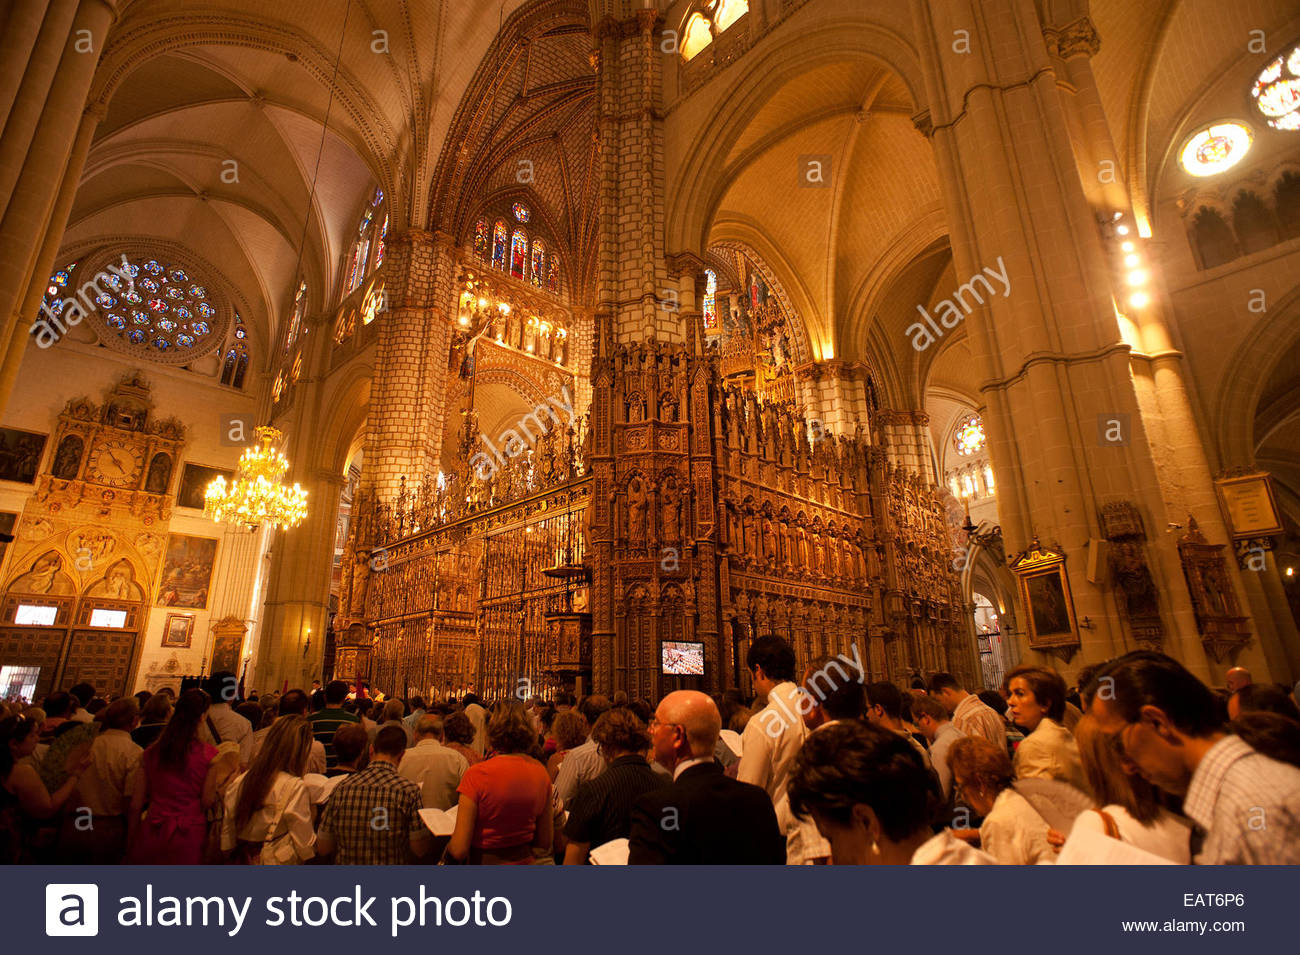 People attending mass at the Catedral de Santa Maria de Toledo. - Stock Image